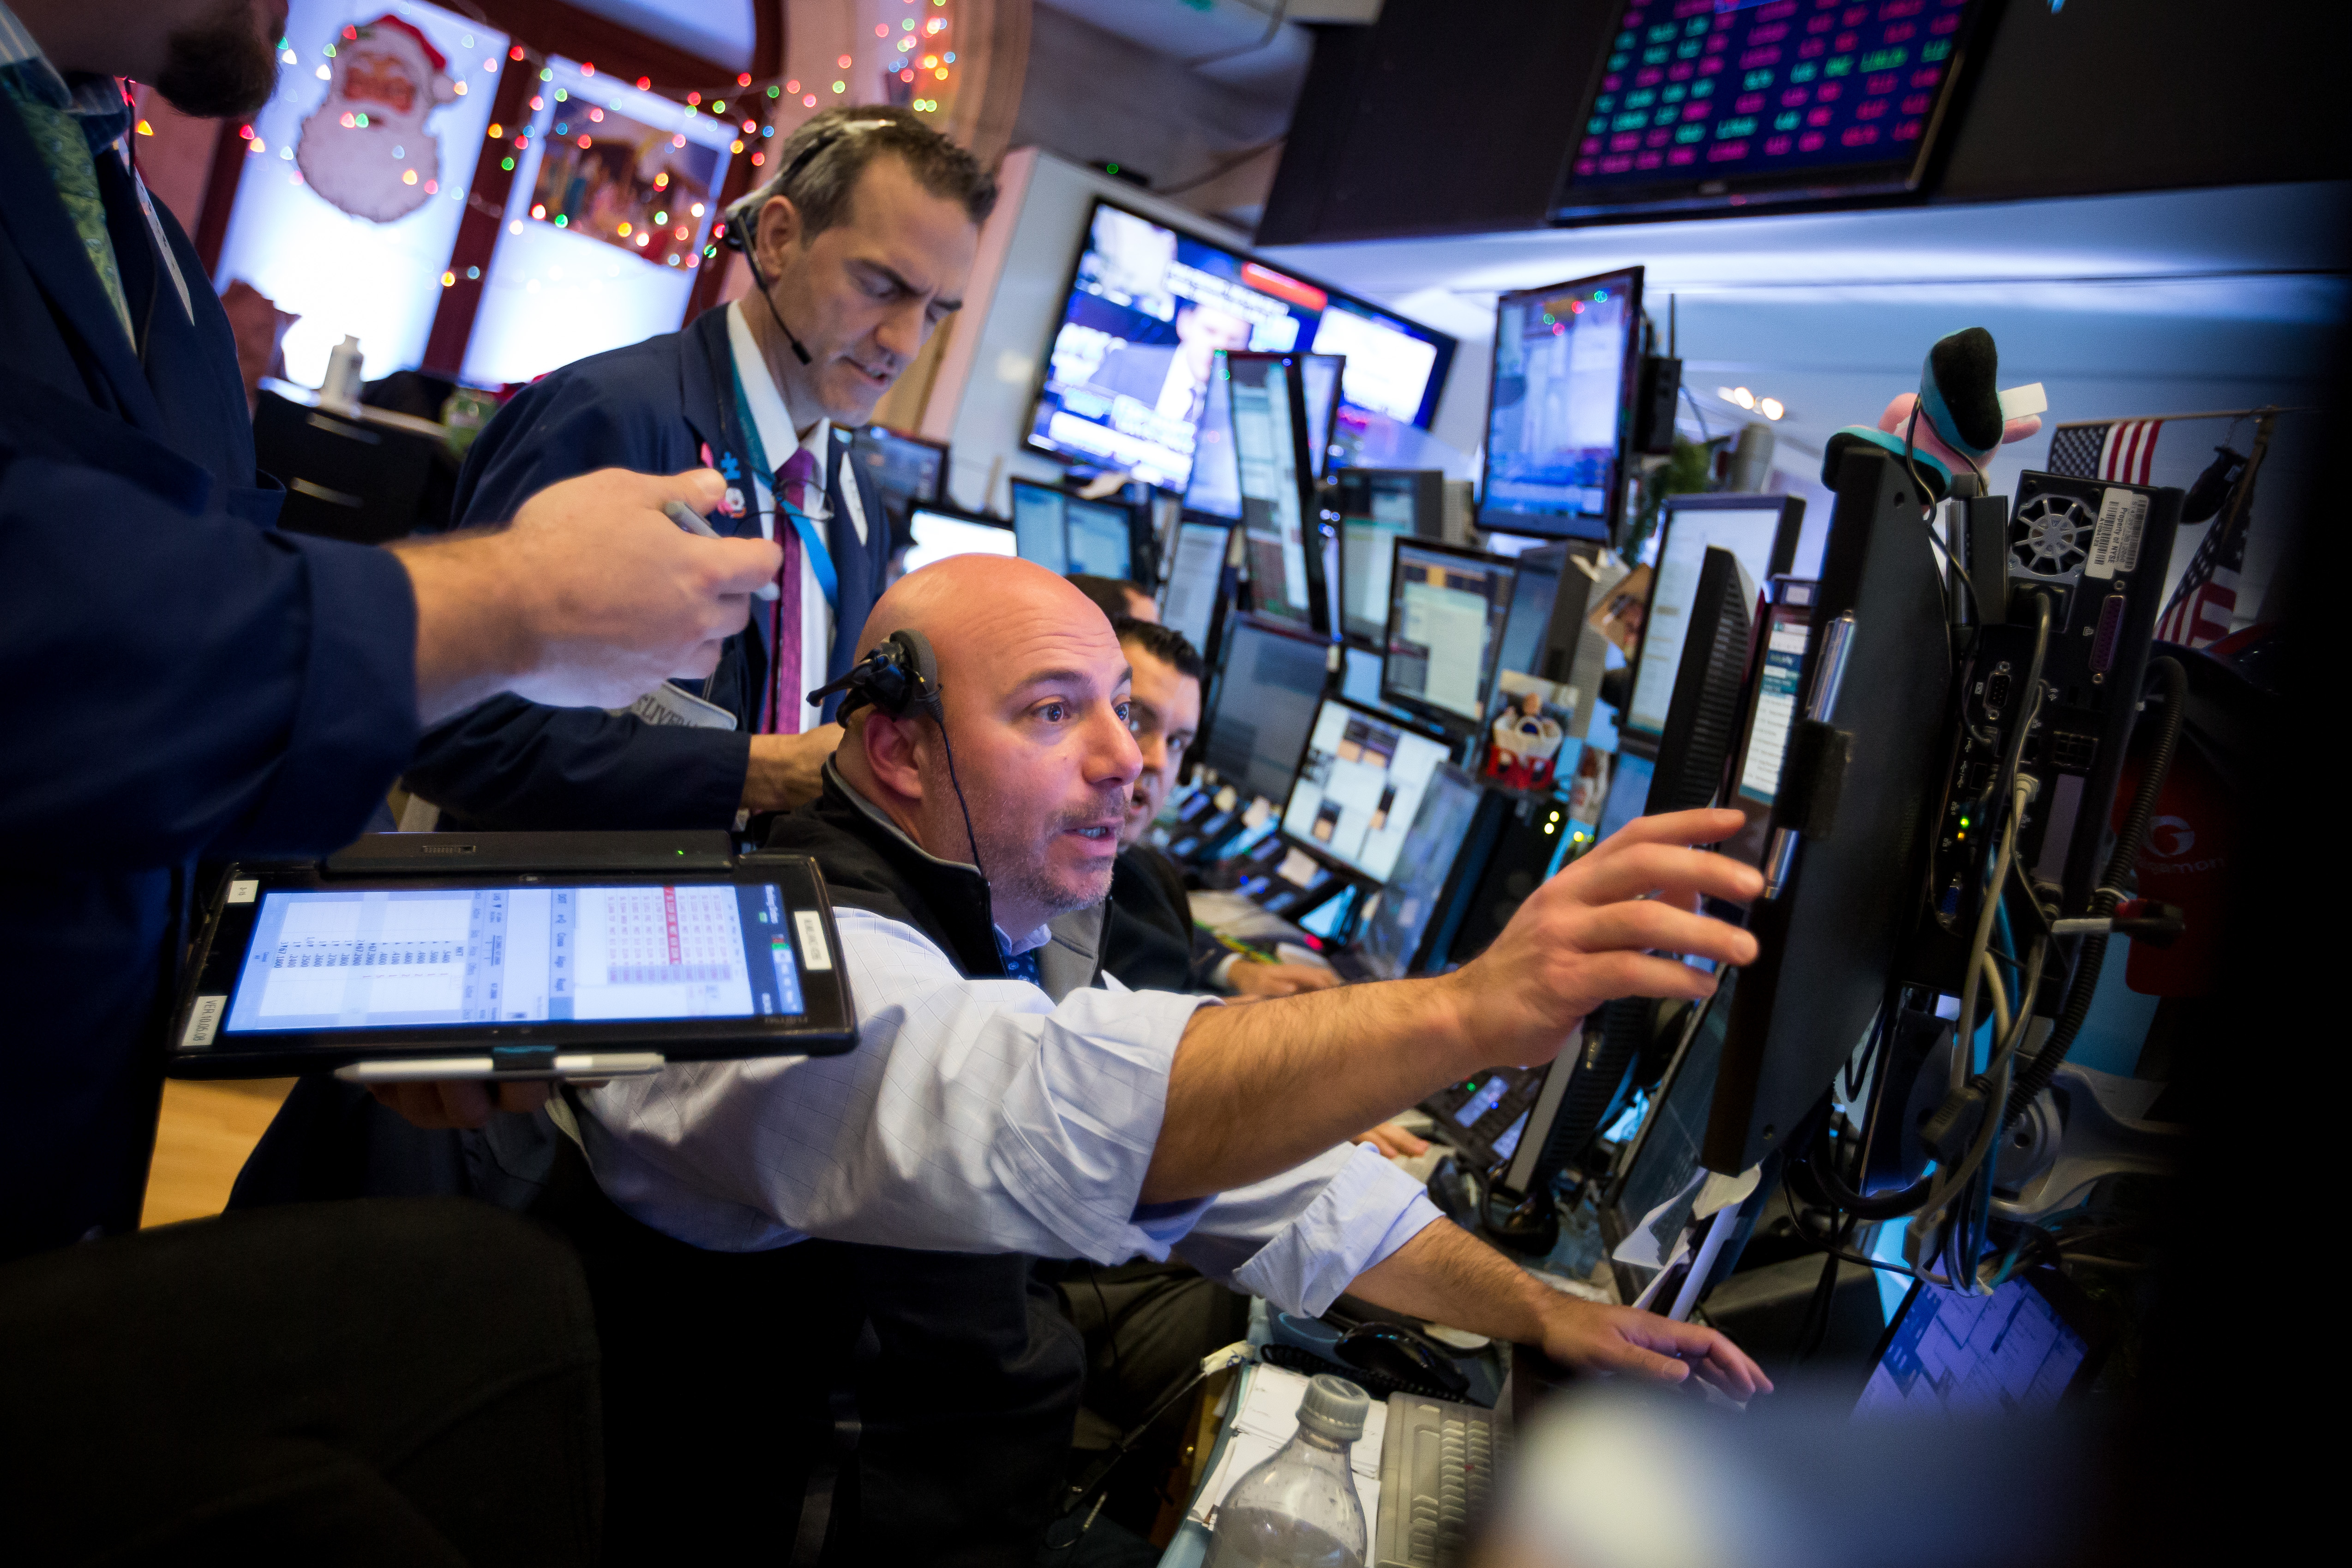 Traders work on the floor of the New York Stock Exchange (NYSE) in New York, U.S., on Monday, Nov. 13, 2017. U.S. stocks fluctuated, while Treasuries and the dollar edged higher as investors awaited clues on the direction of monetary policy and tax reform.